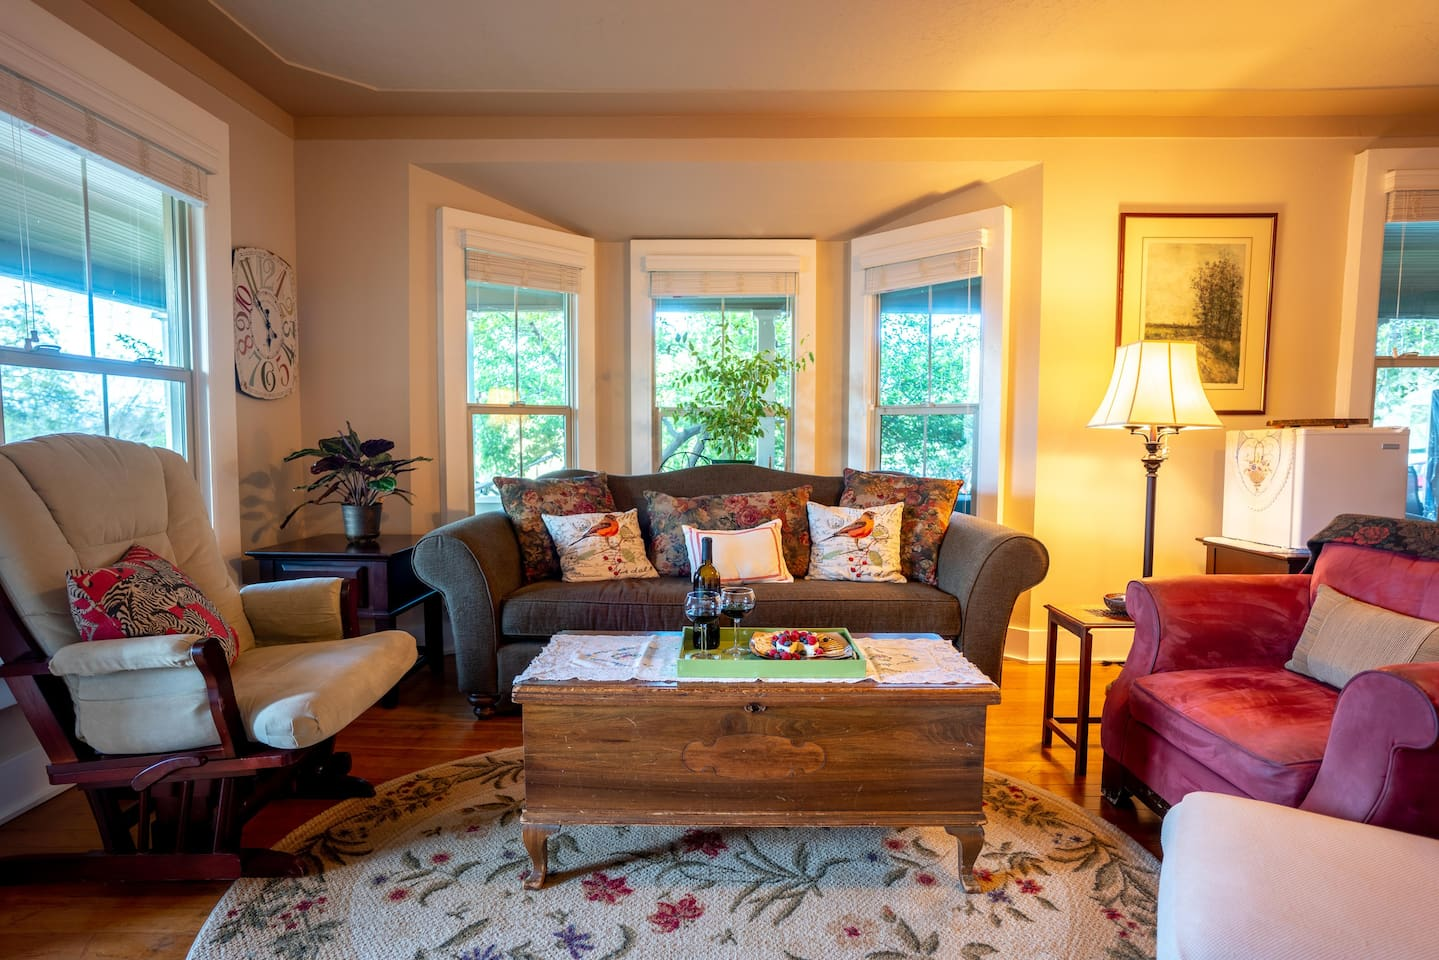 Living room with vintage furnishings and bay window.